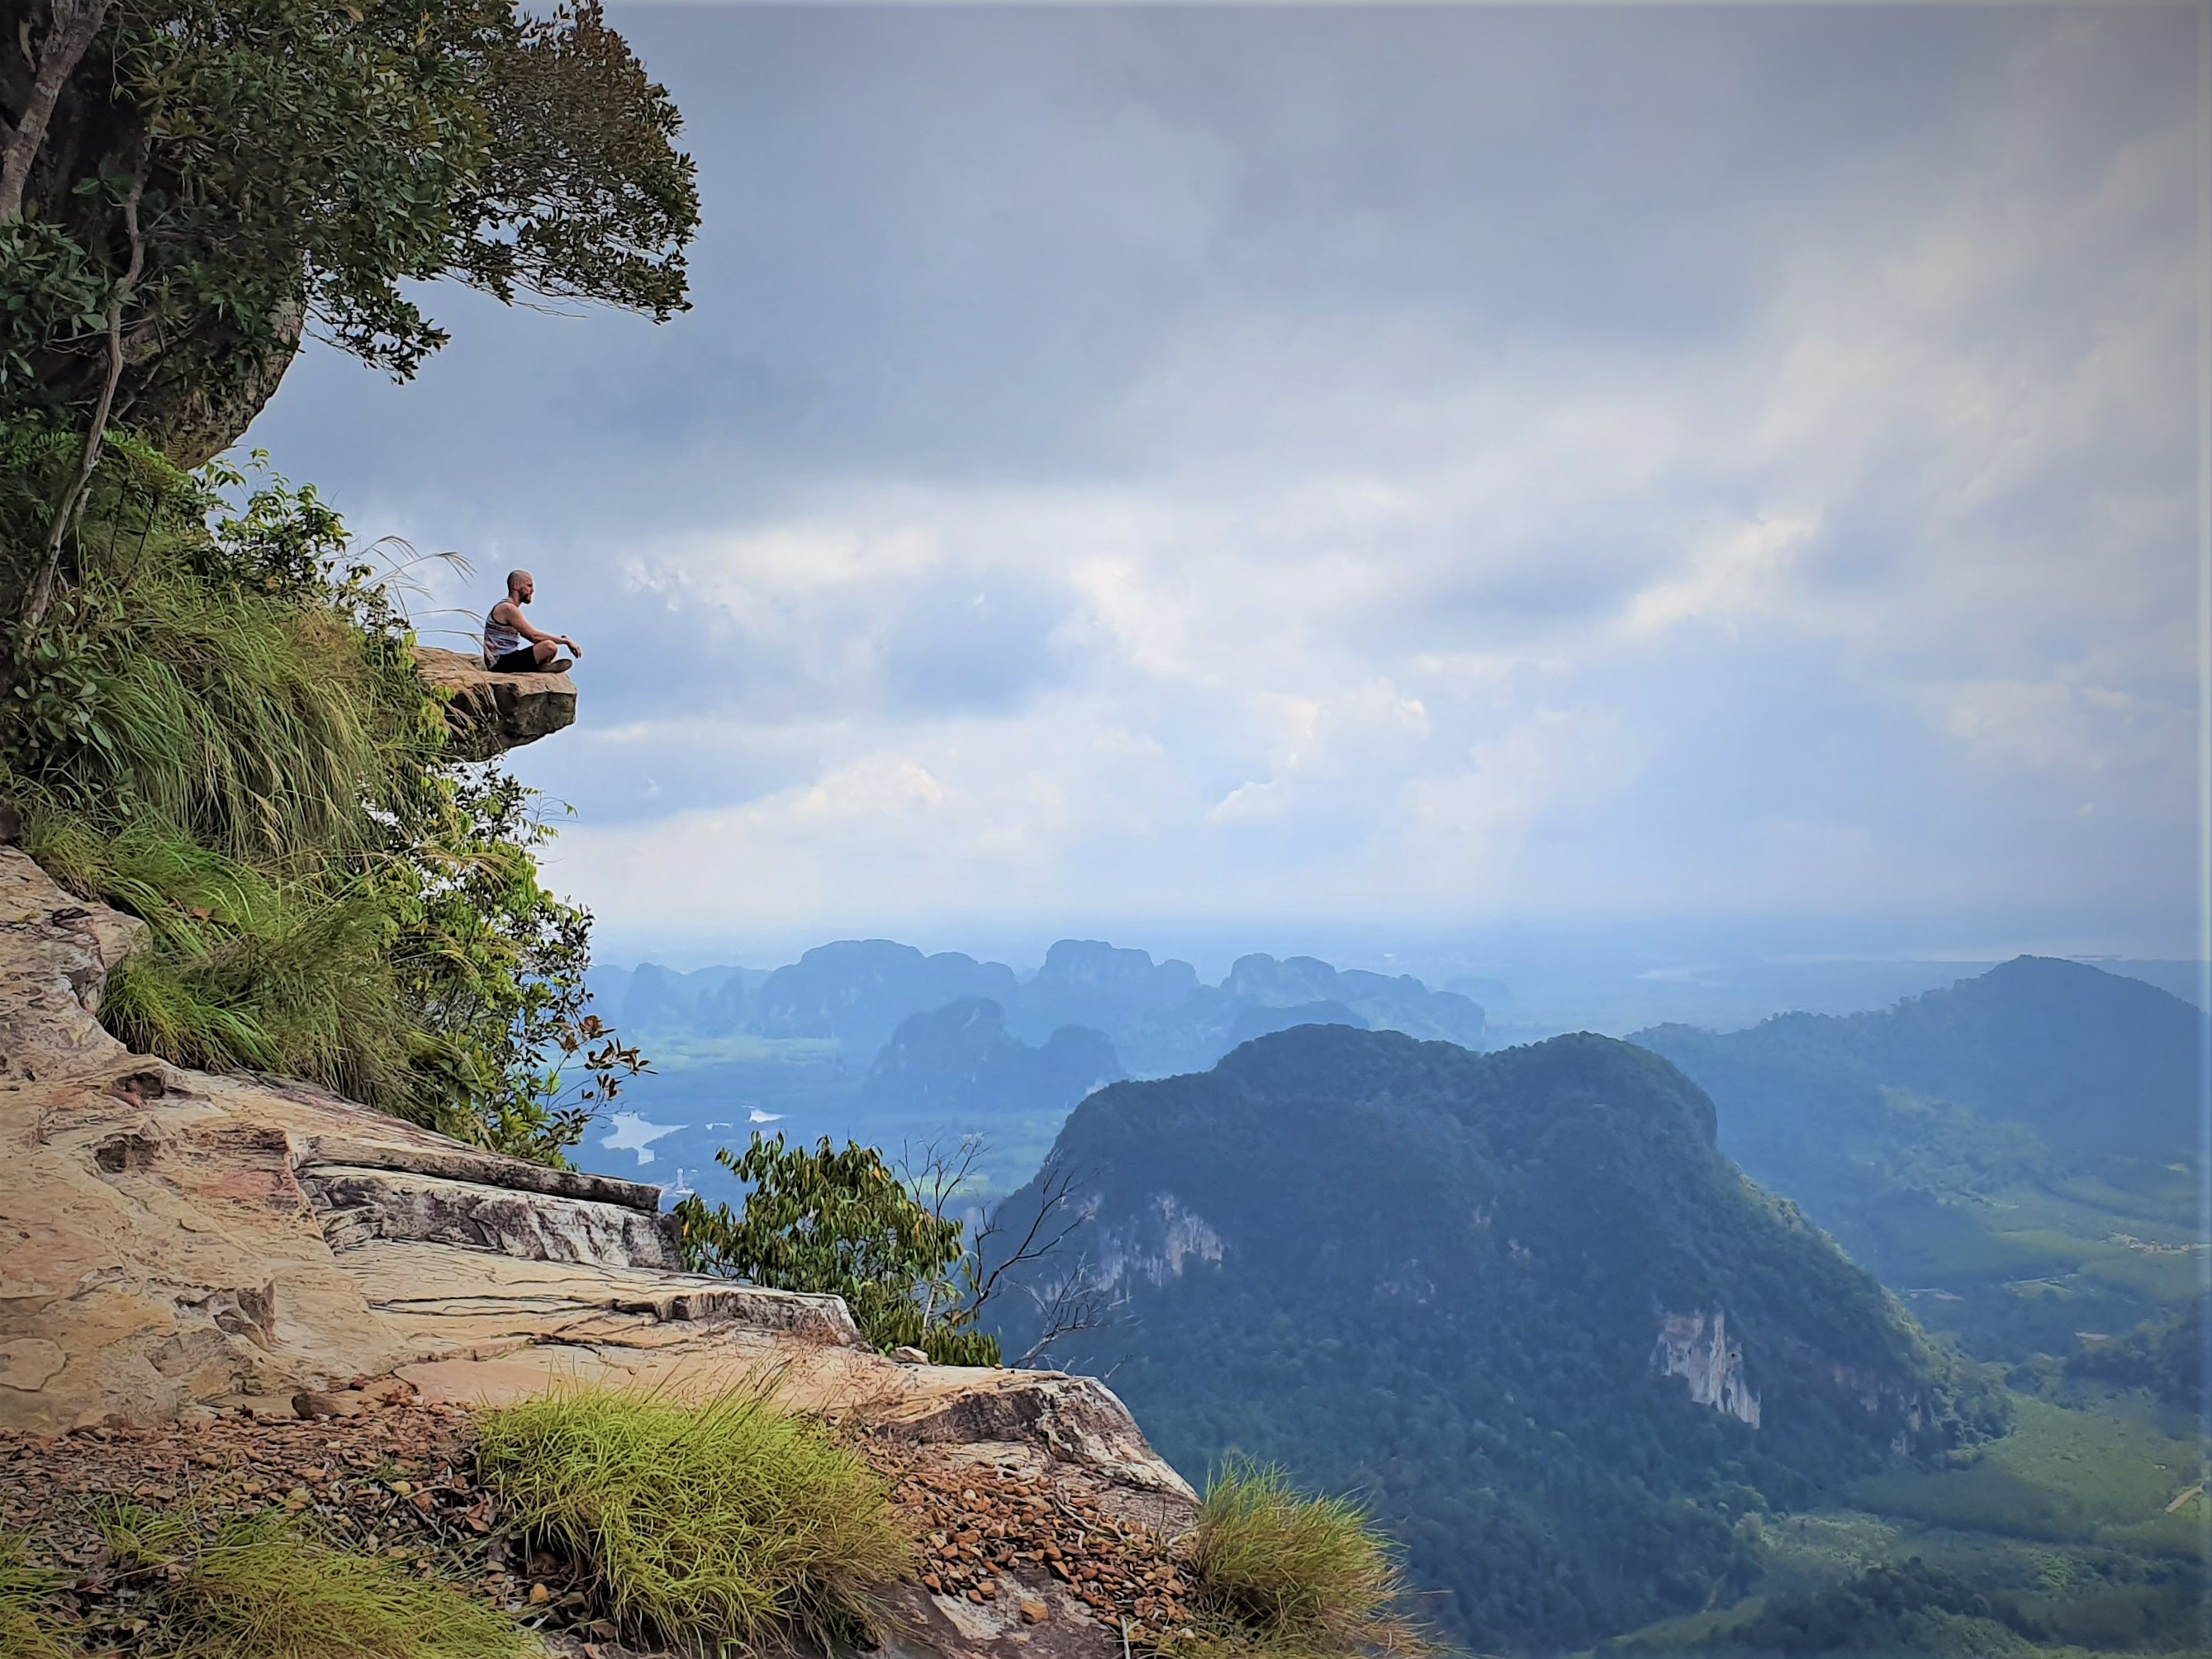 Hiking Khao Ngon Nak - The most epic viewpoint in Krabi • Flipside Travel